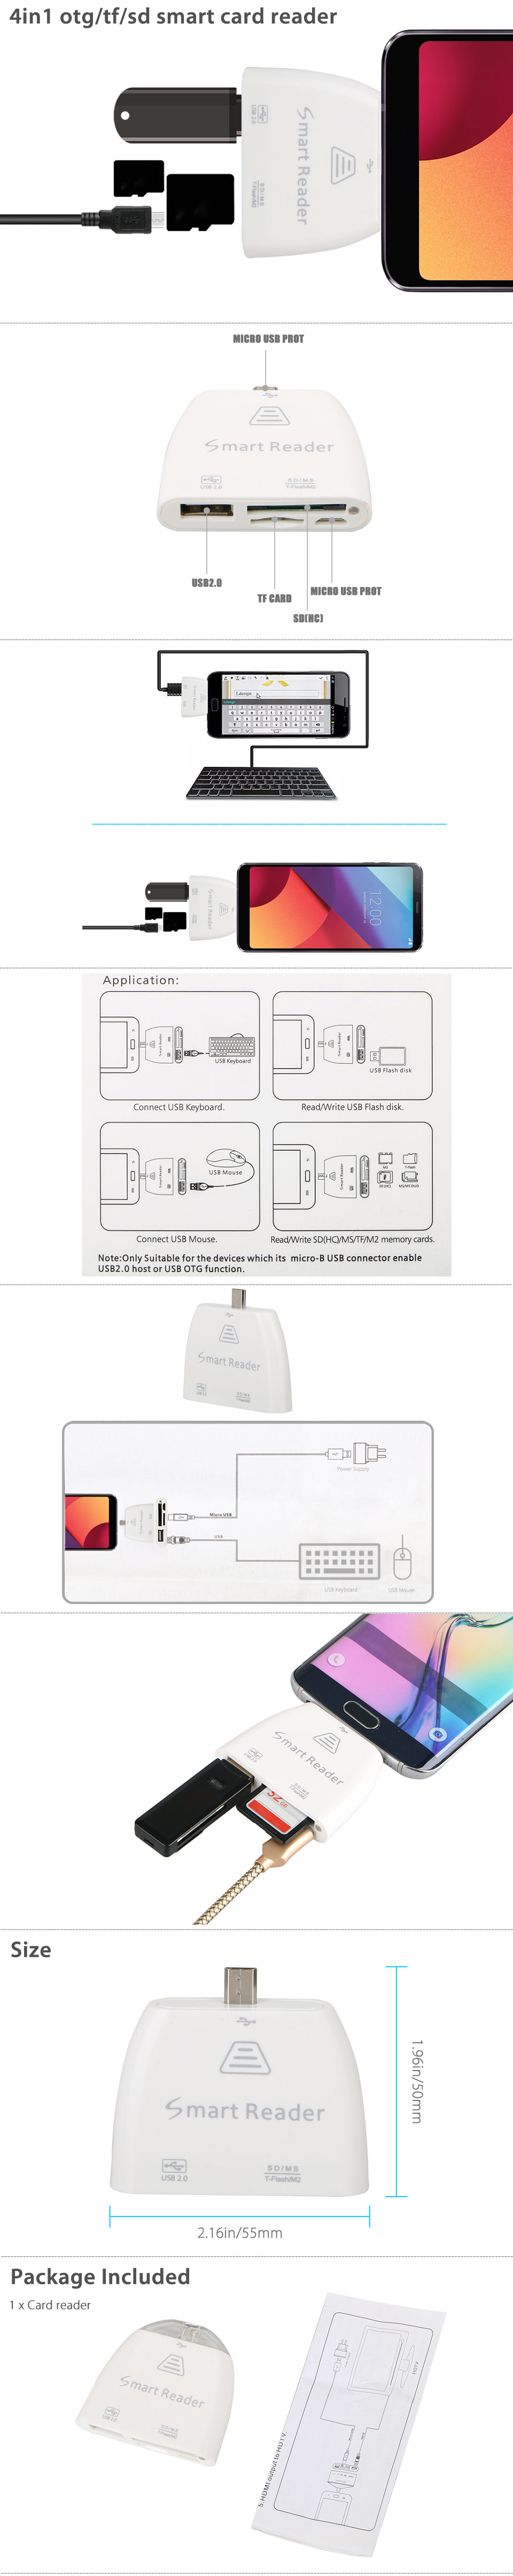 4 In 1 Otg Tf Sd Smart Card Reader Adapter W Micro Usb Charging Orange Wire Diagram Product Features